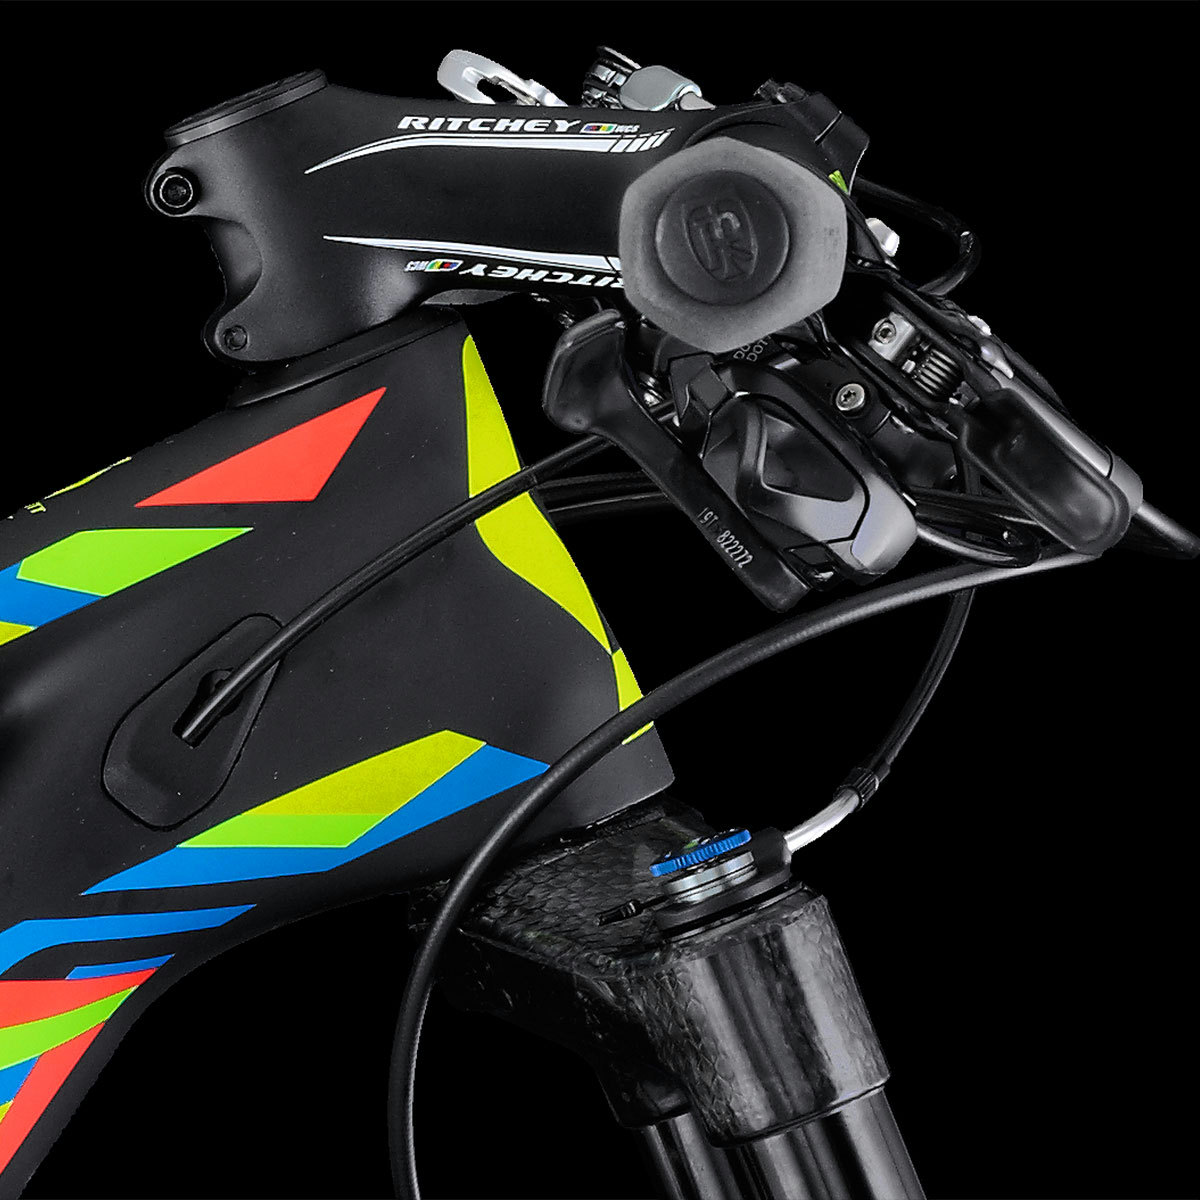 Spark RC 900 Worldcup Rio Edition_Close up image_2016_BIKE_SCOTT Sports_03